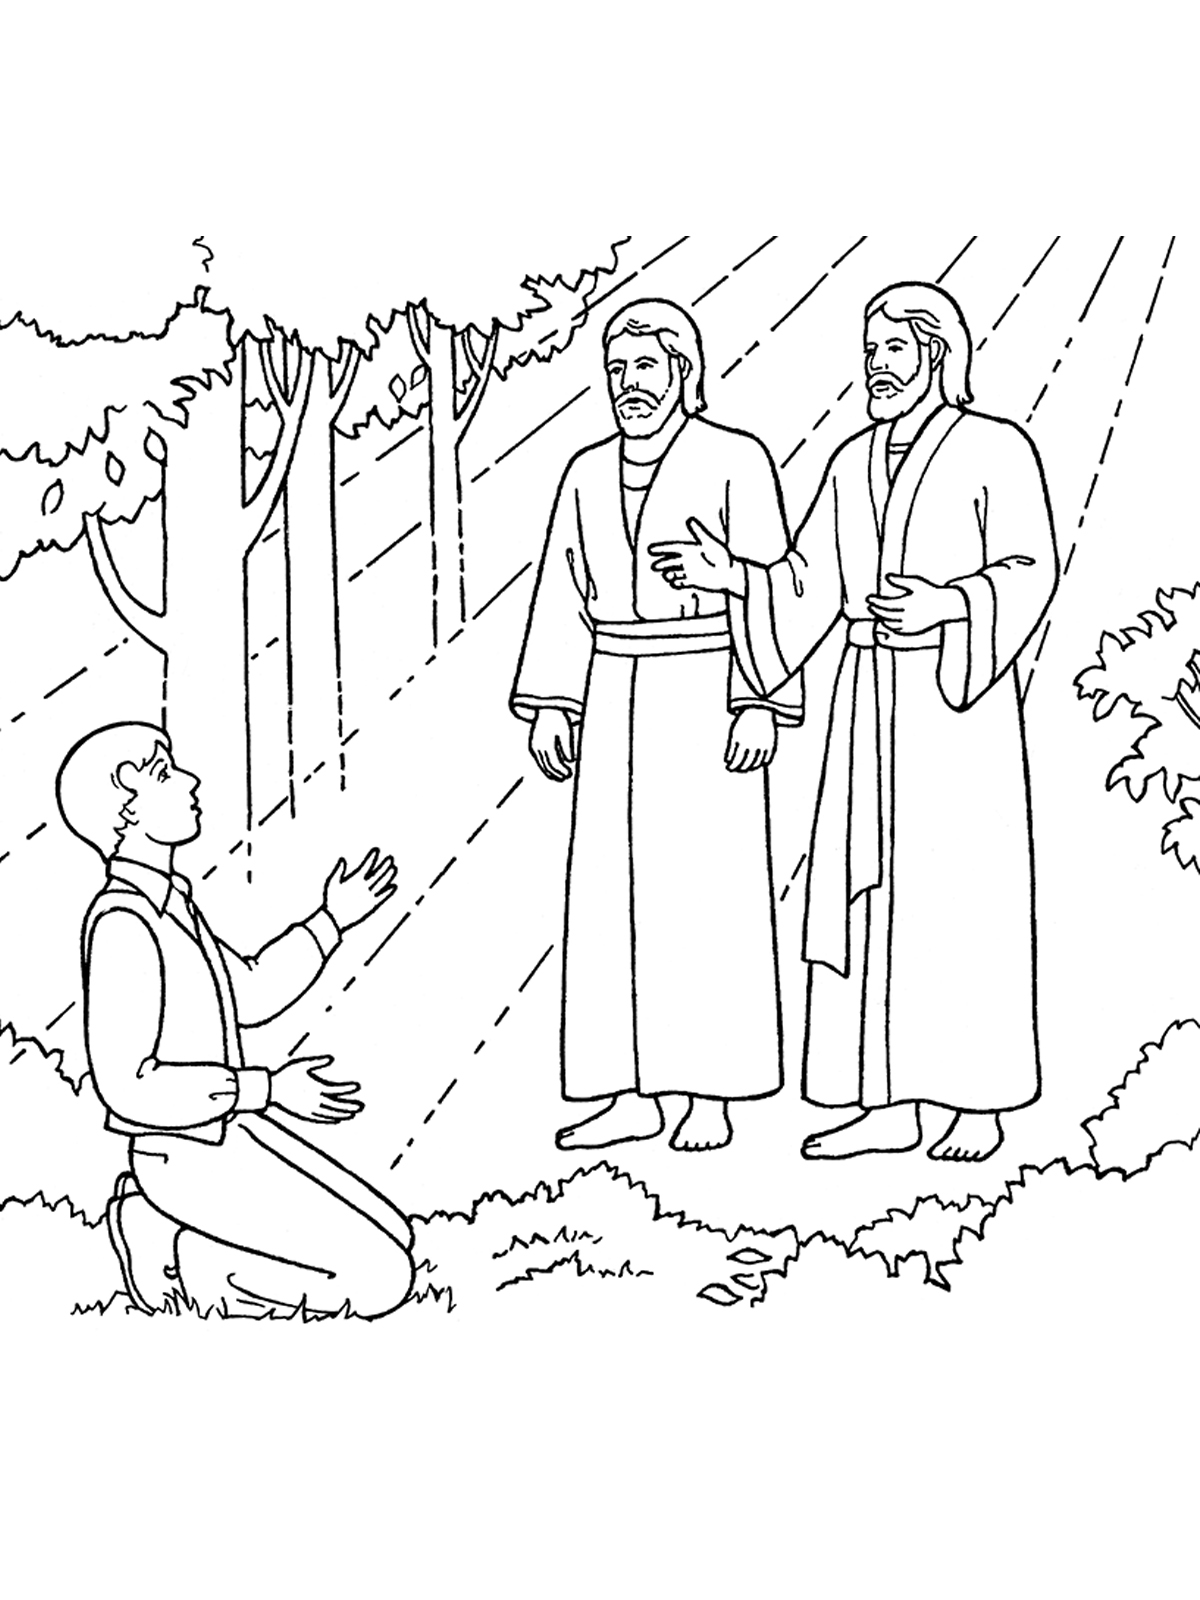 The First Vision: Joseph Sees God the Father and Jesus Christ